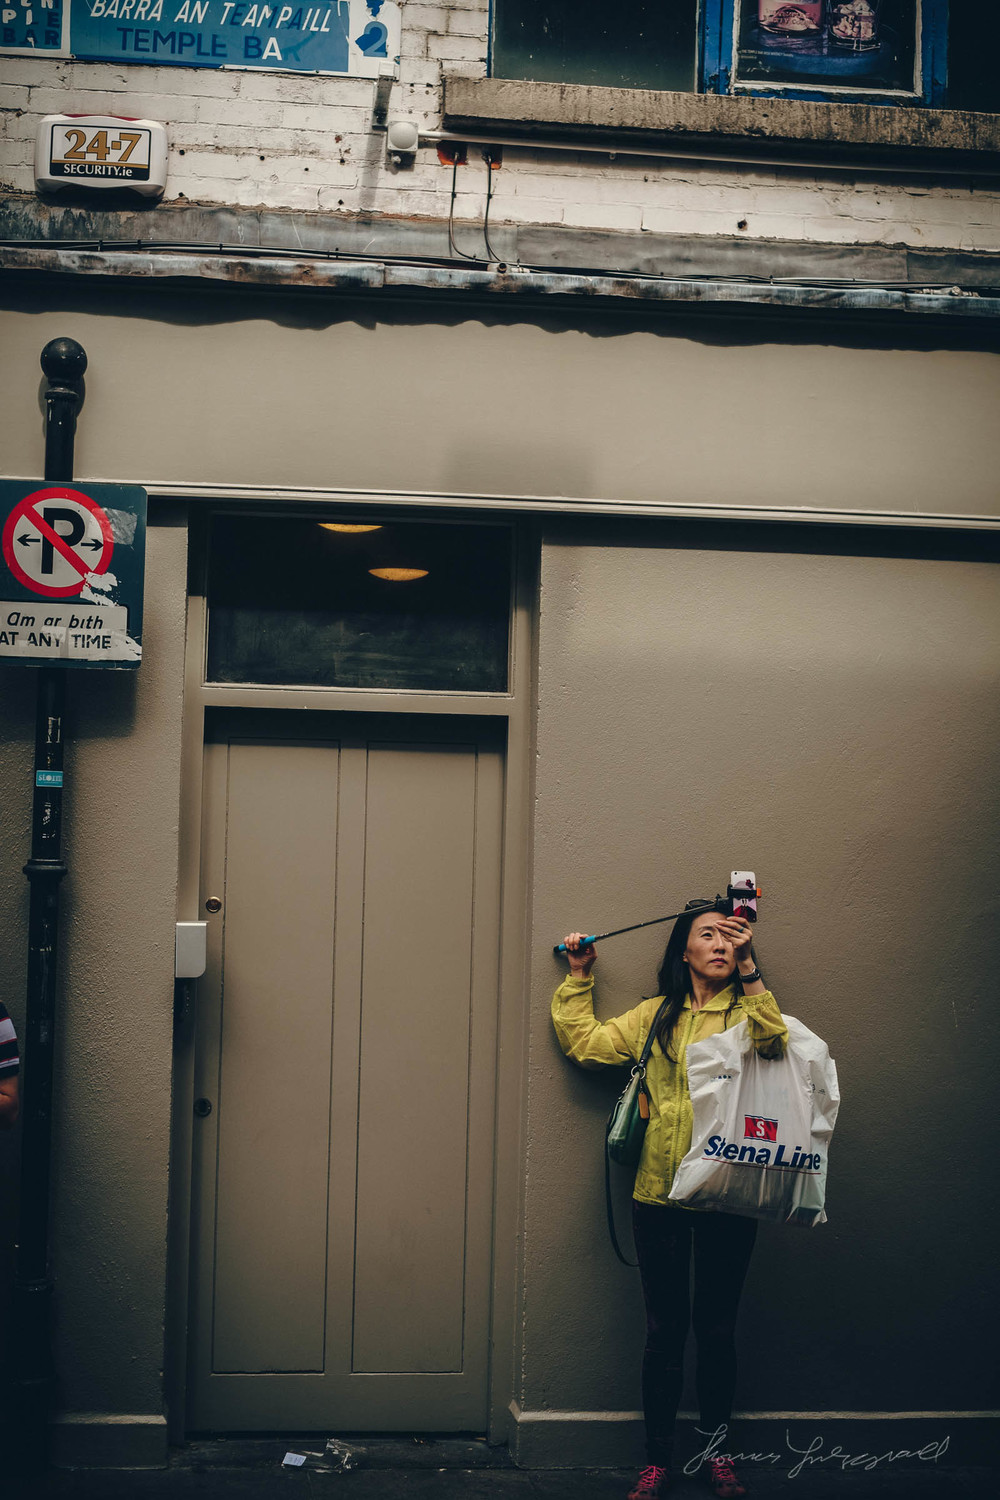 Tourist Taking a Selfie in Dublin's Temple Bar - Fuji X-E1 XF35mm f1.4